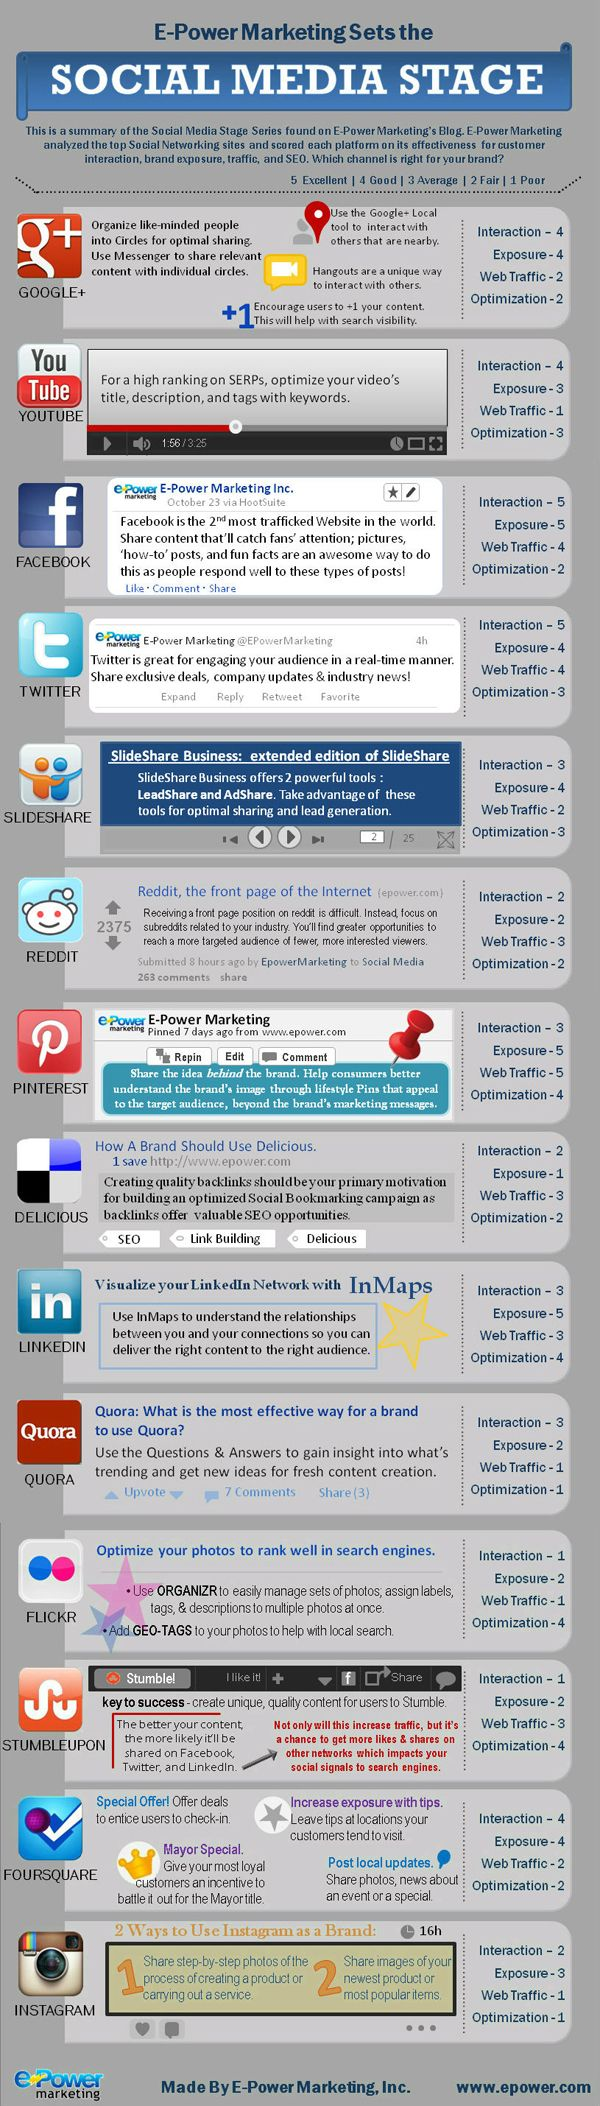 Effectiveness Comparison Of Top Social Media Networks